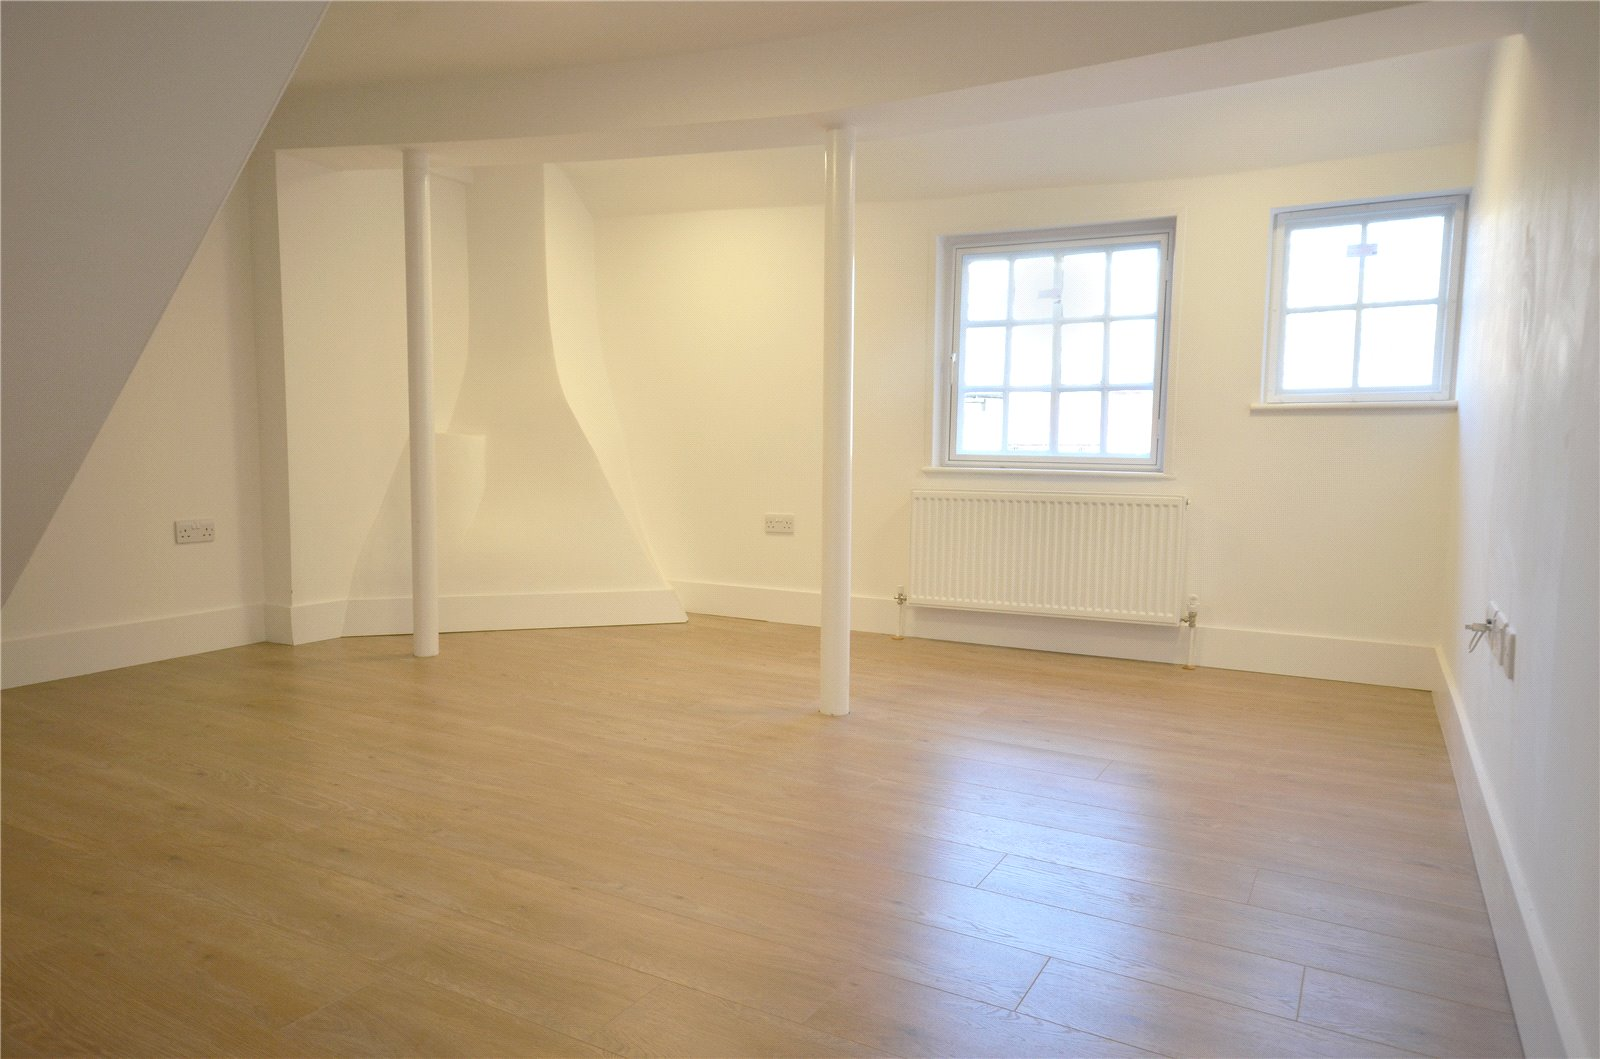 2 Bedrooms Flat for sale in High Street, Rickmansworth, Hertfordshire, WD3